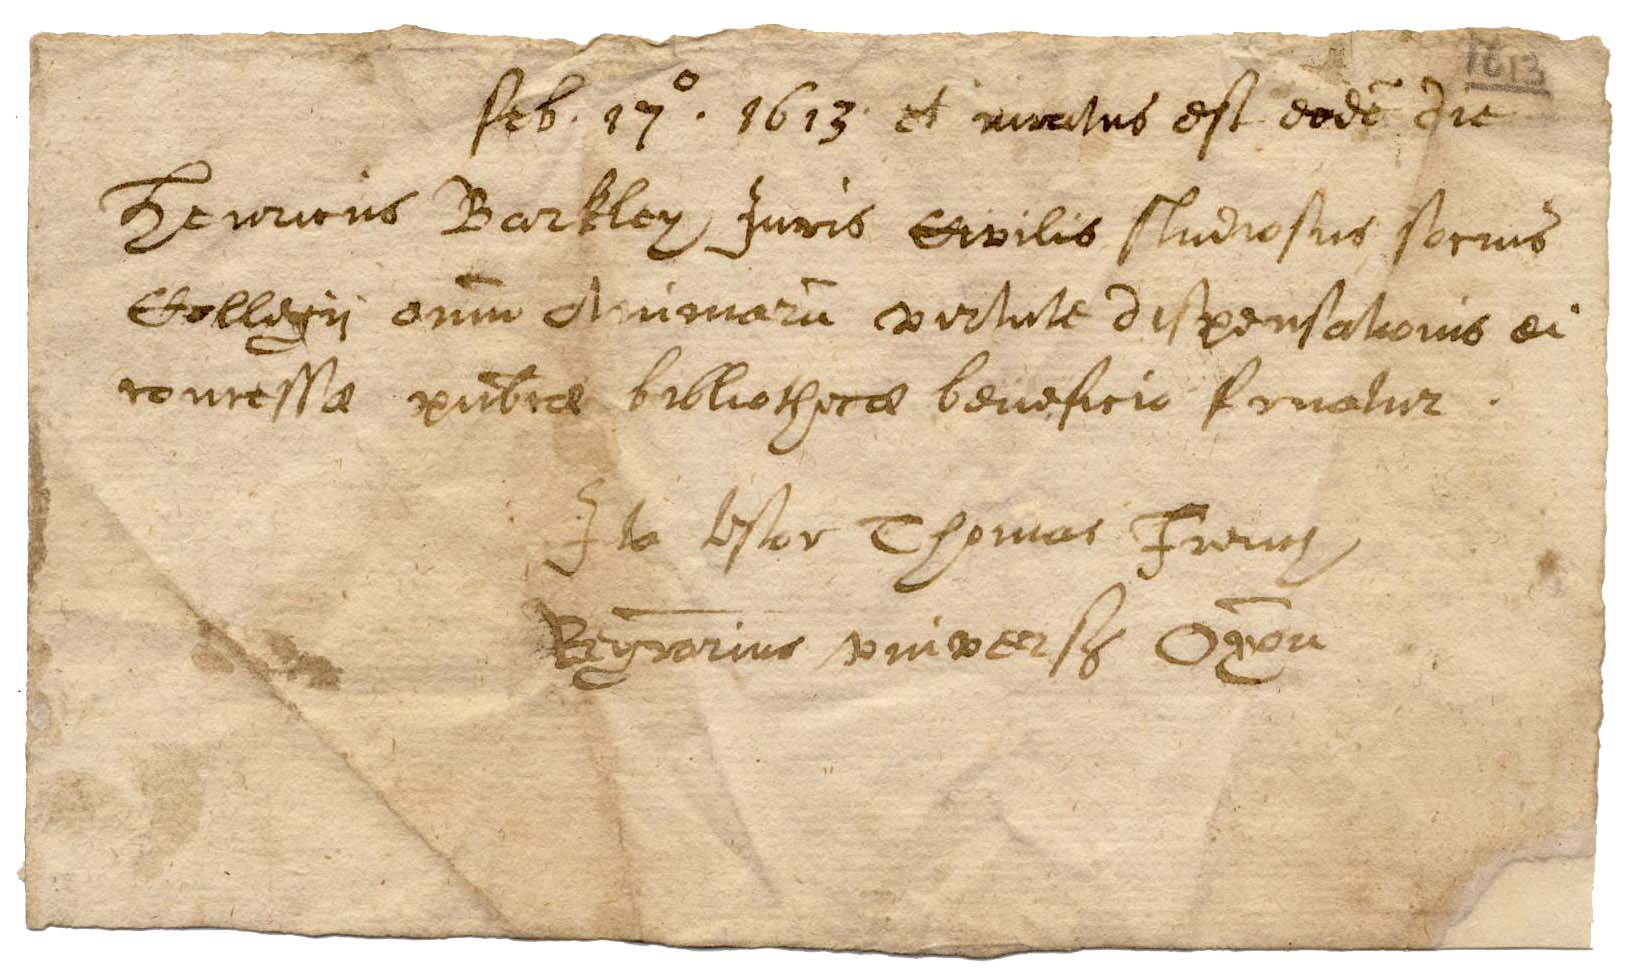 Image of earliest known Bodleian reader's card